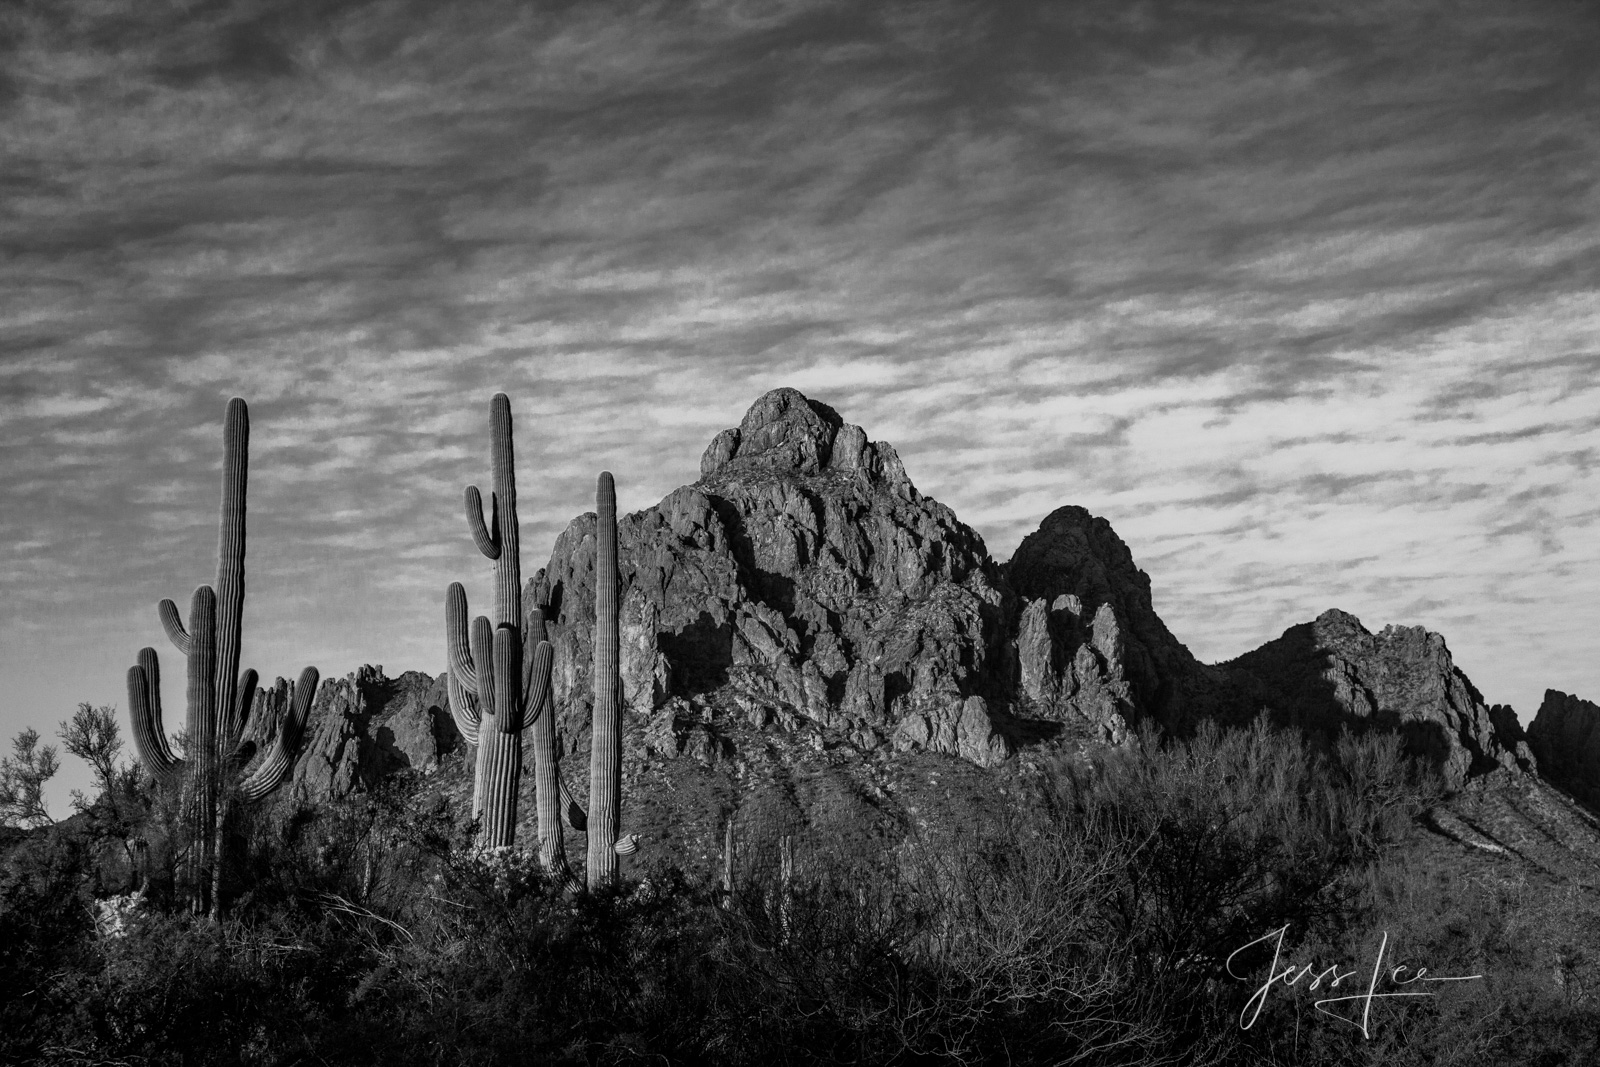 Bring home this classic style Black and White, Desert Southwest,  Fine Art Print. A Limited Edition of 50.  Copyright © Jess...